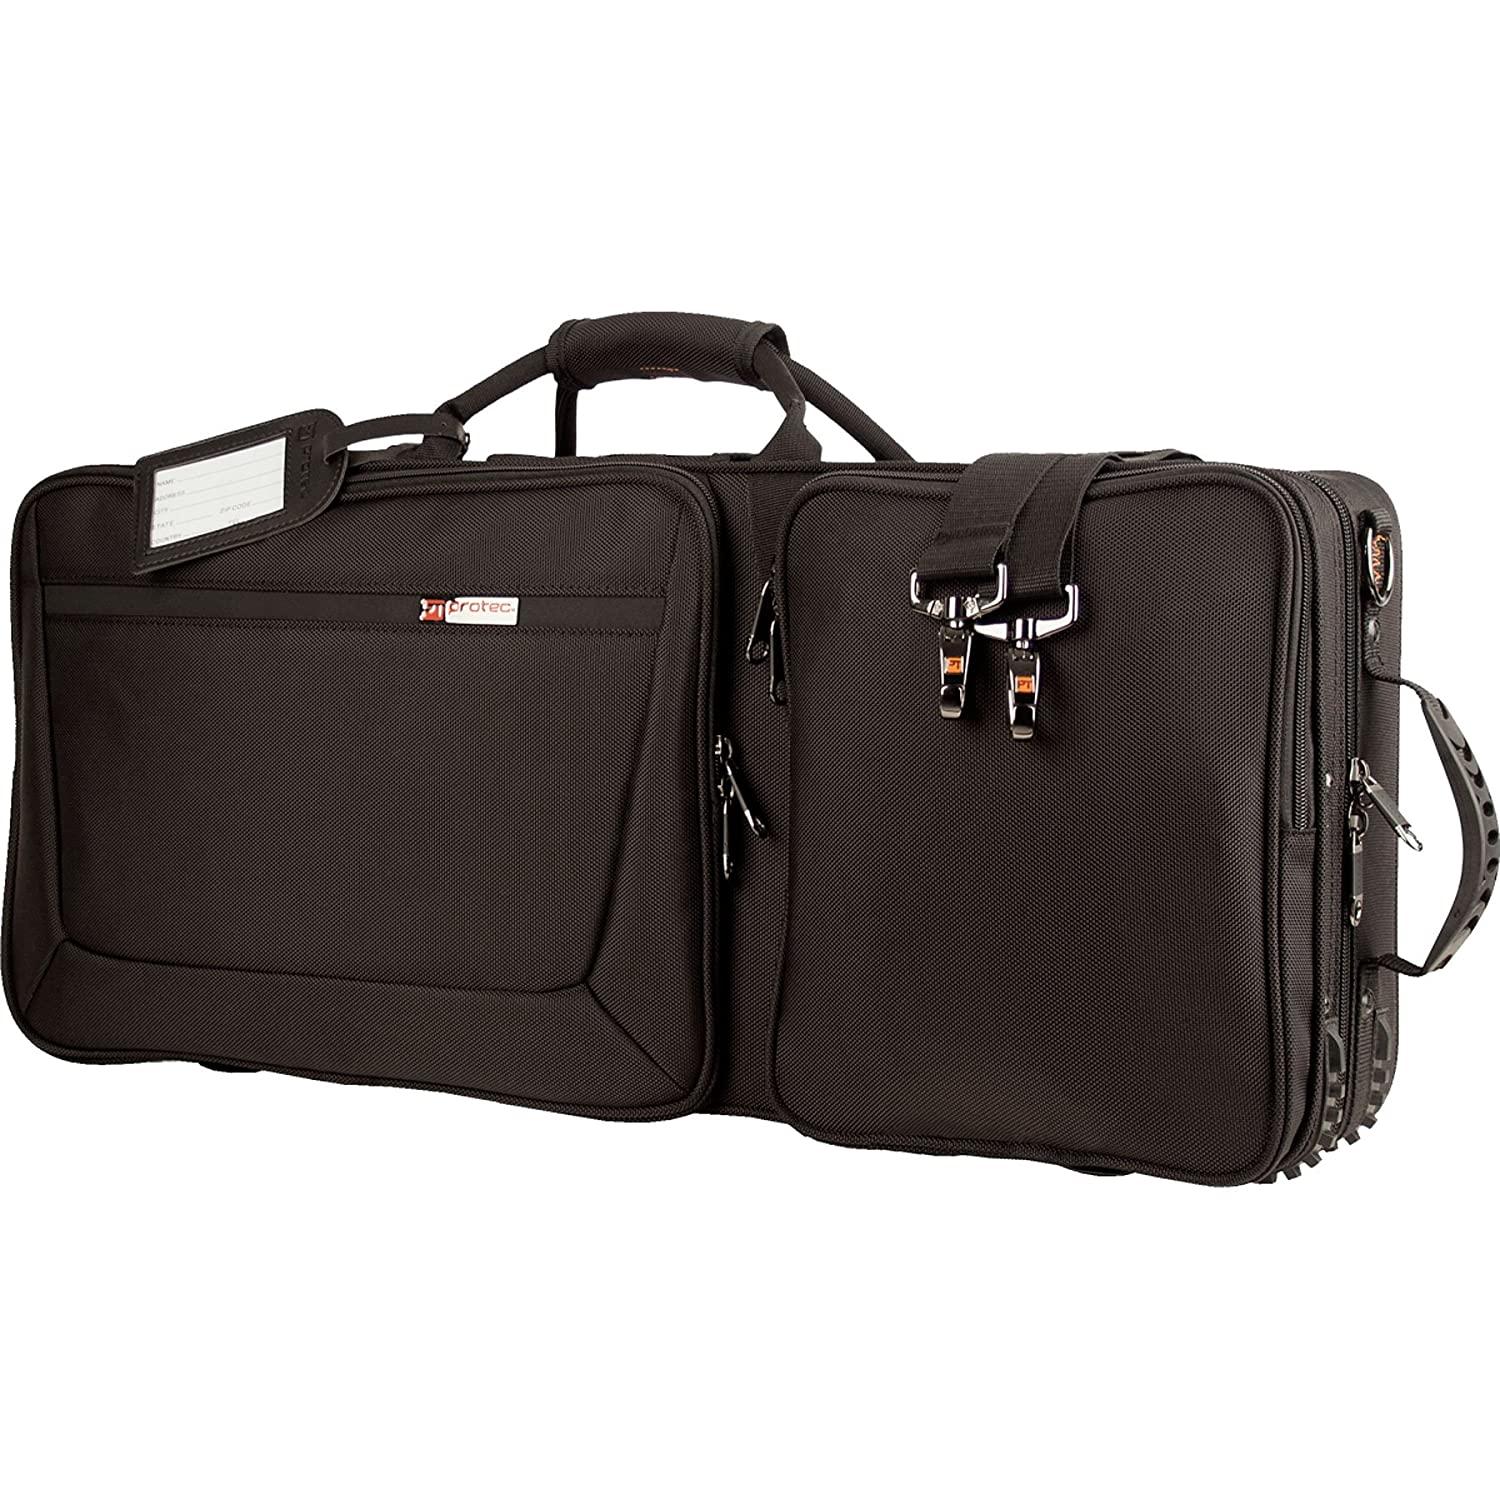 6bacd272a88 Protec PB317 Bassoon Pro Pac Case - Black: Amazon.co.uk: Musical Instruments